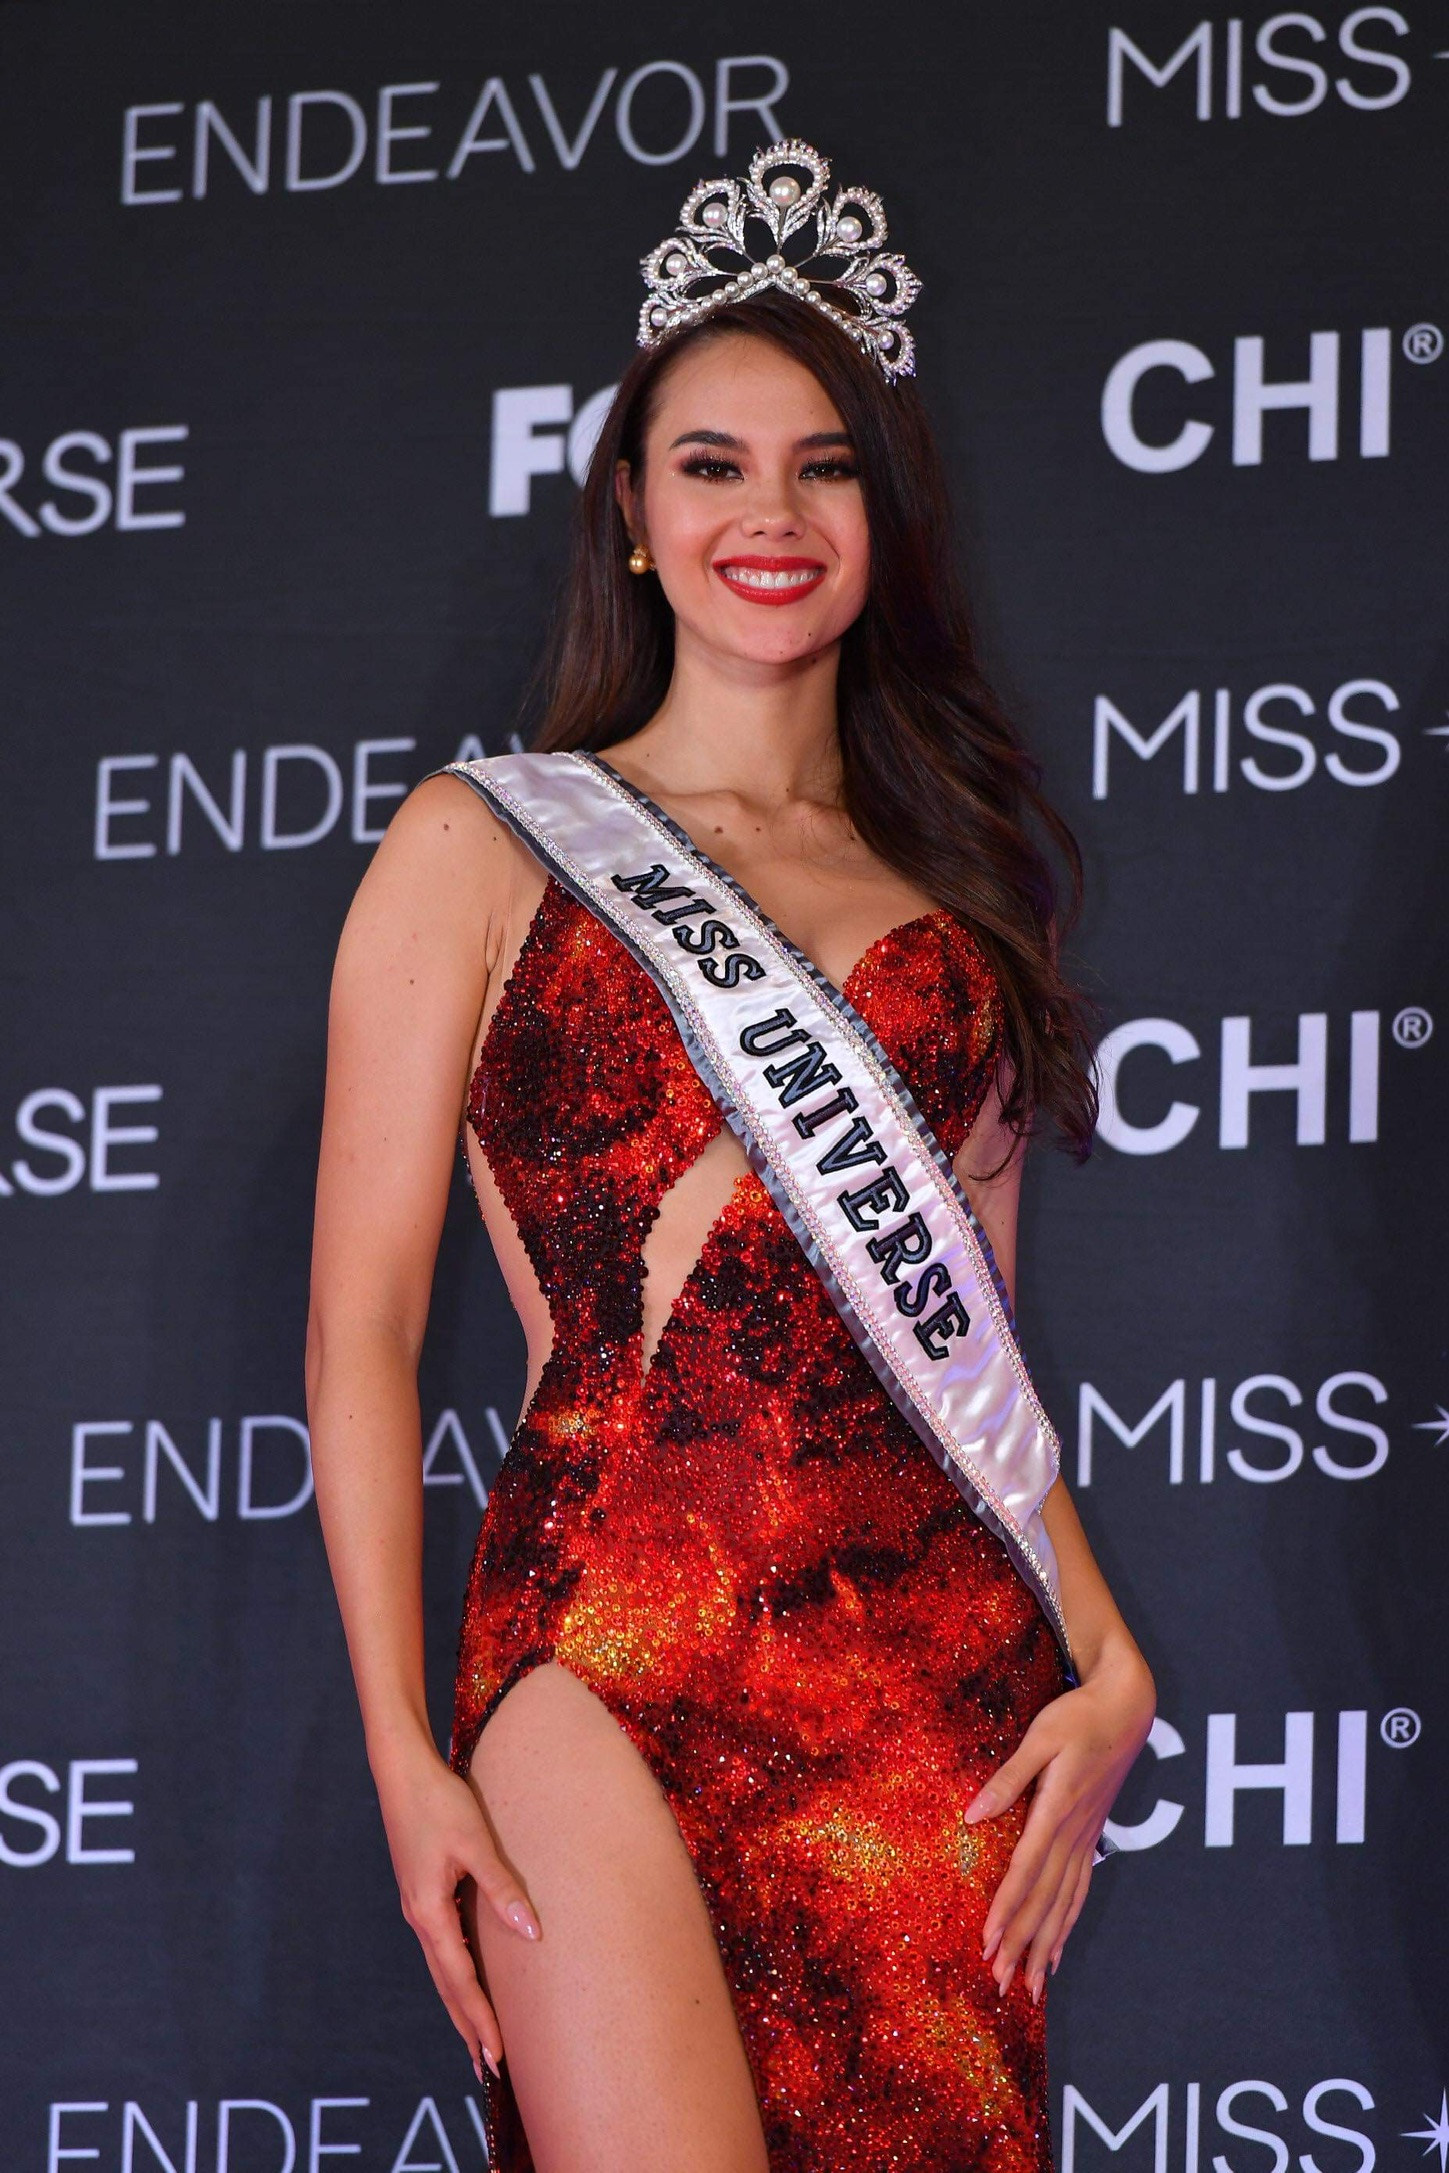 Grand Homecoming sets for Miss Universe Catriona Gray